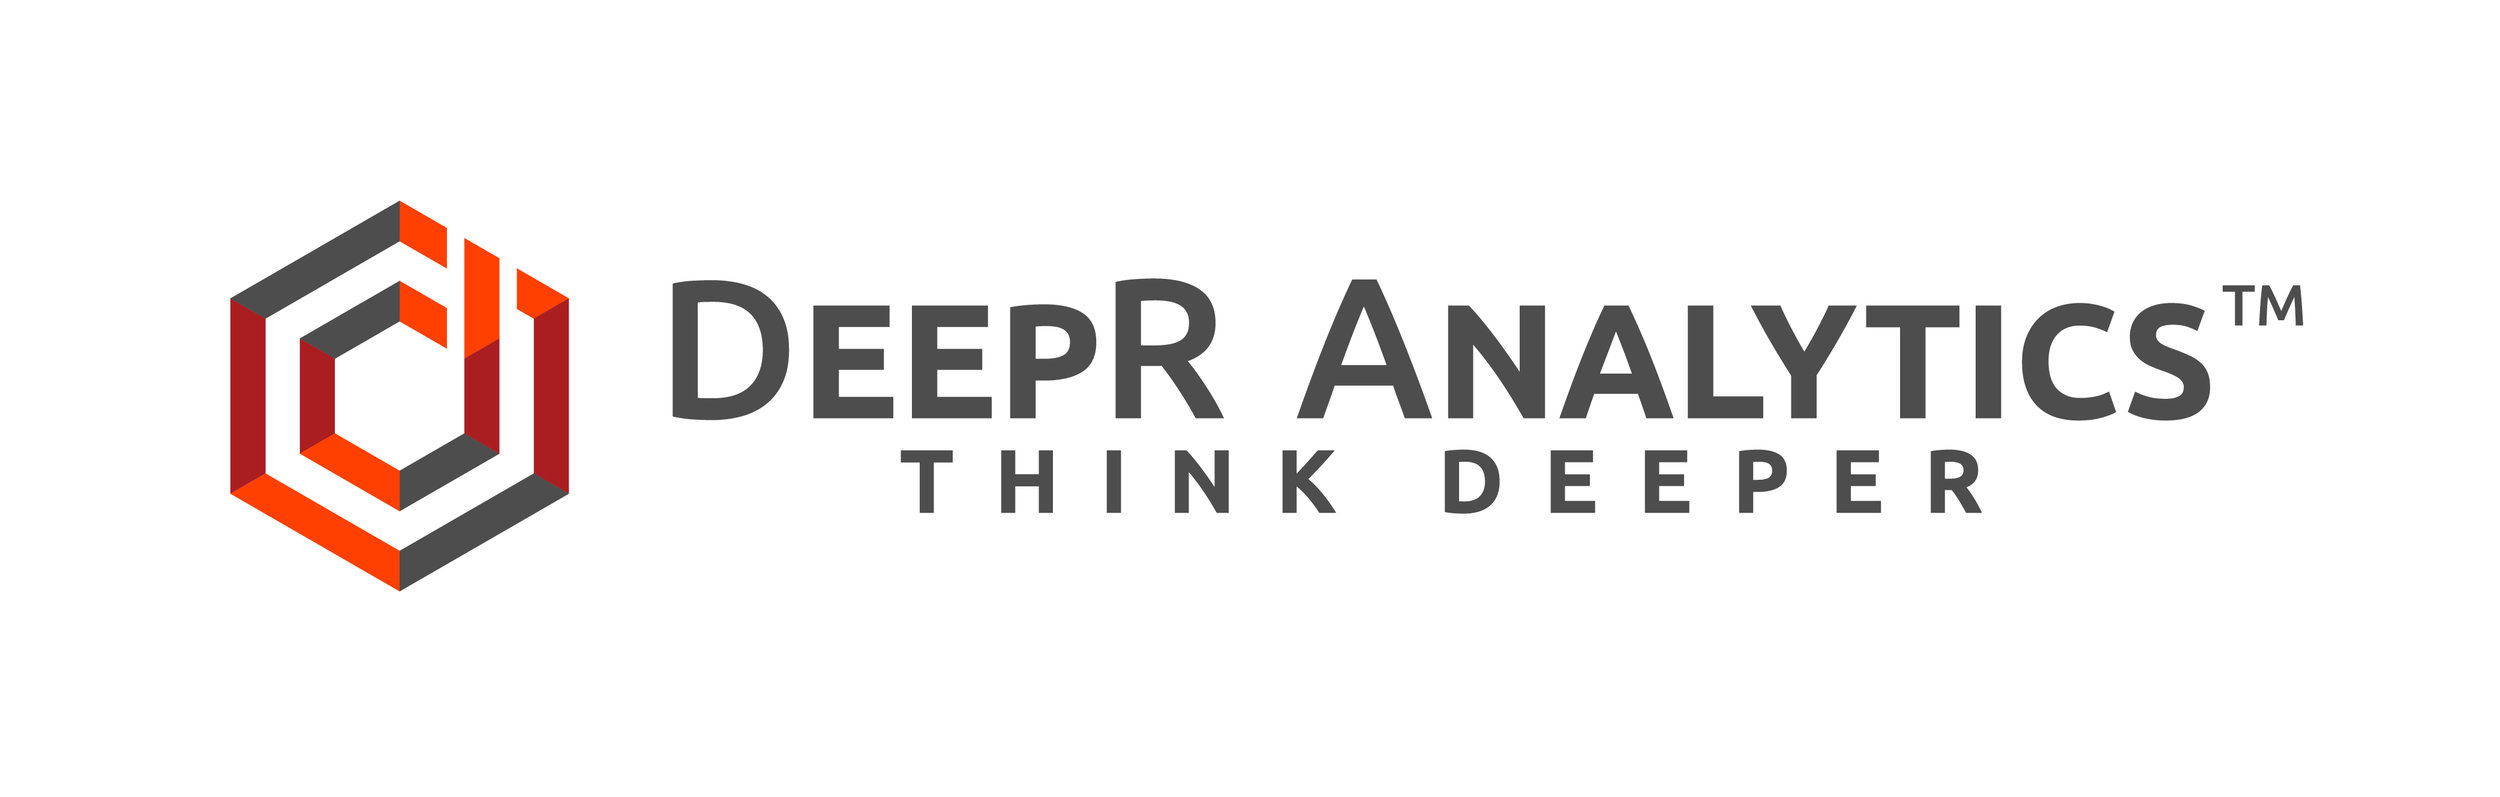 DeepR_Analytics_logo_full-01.jpg